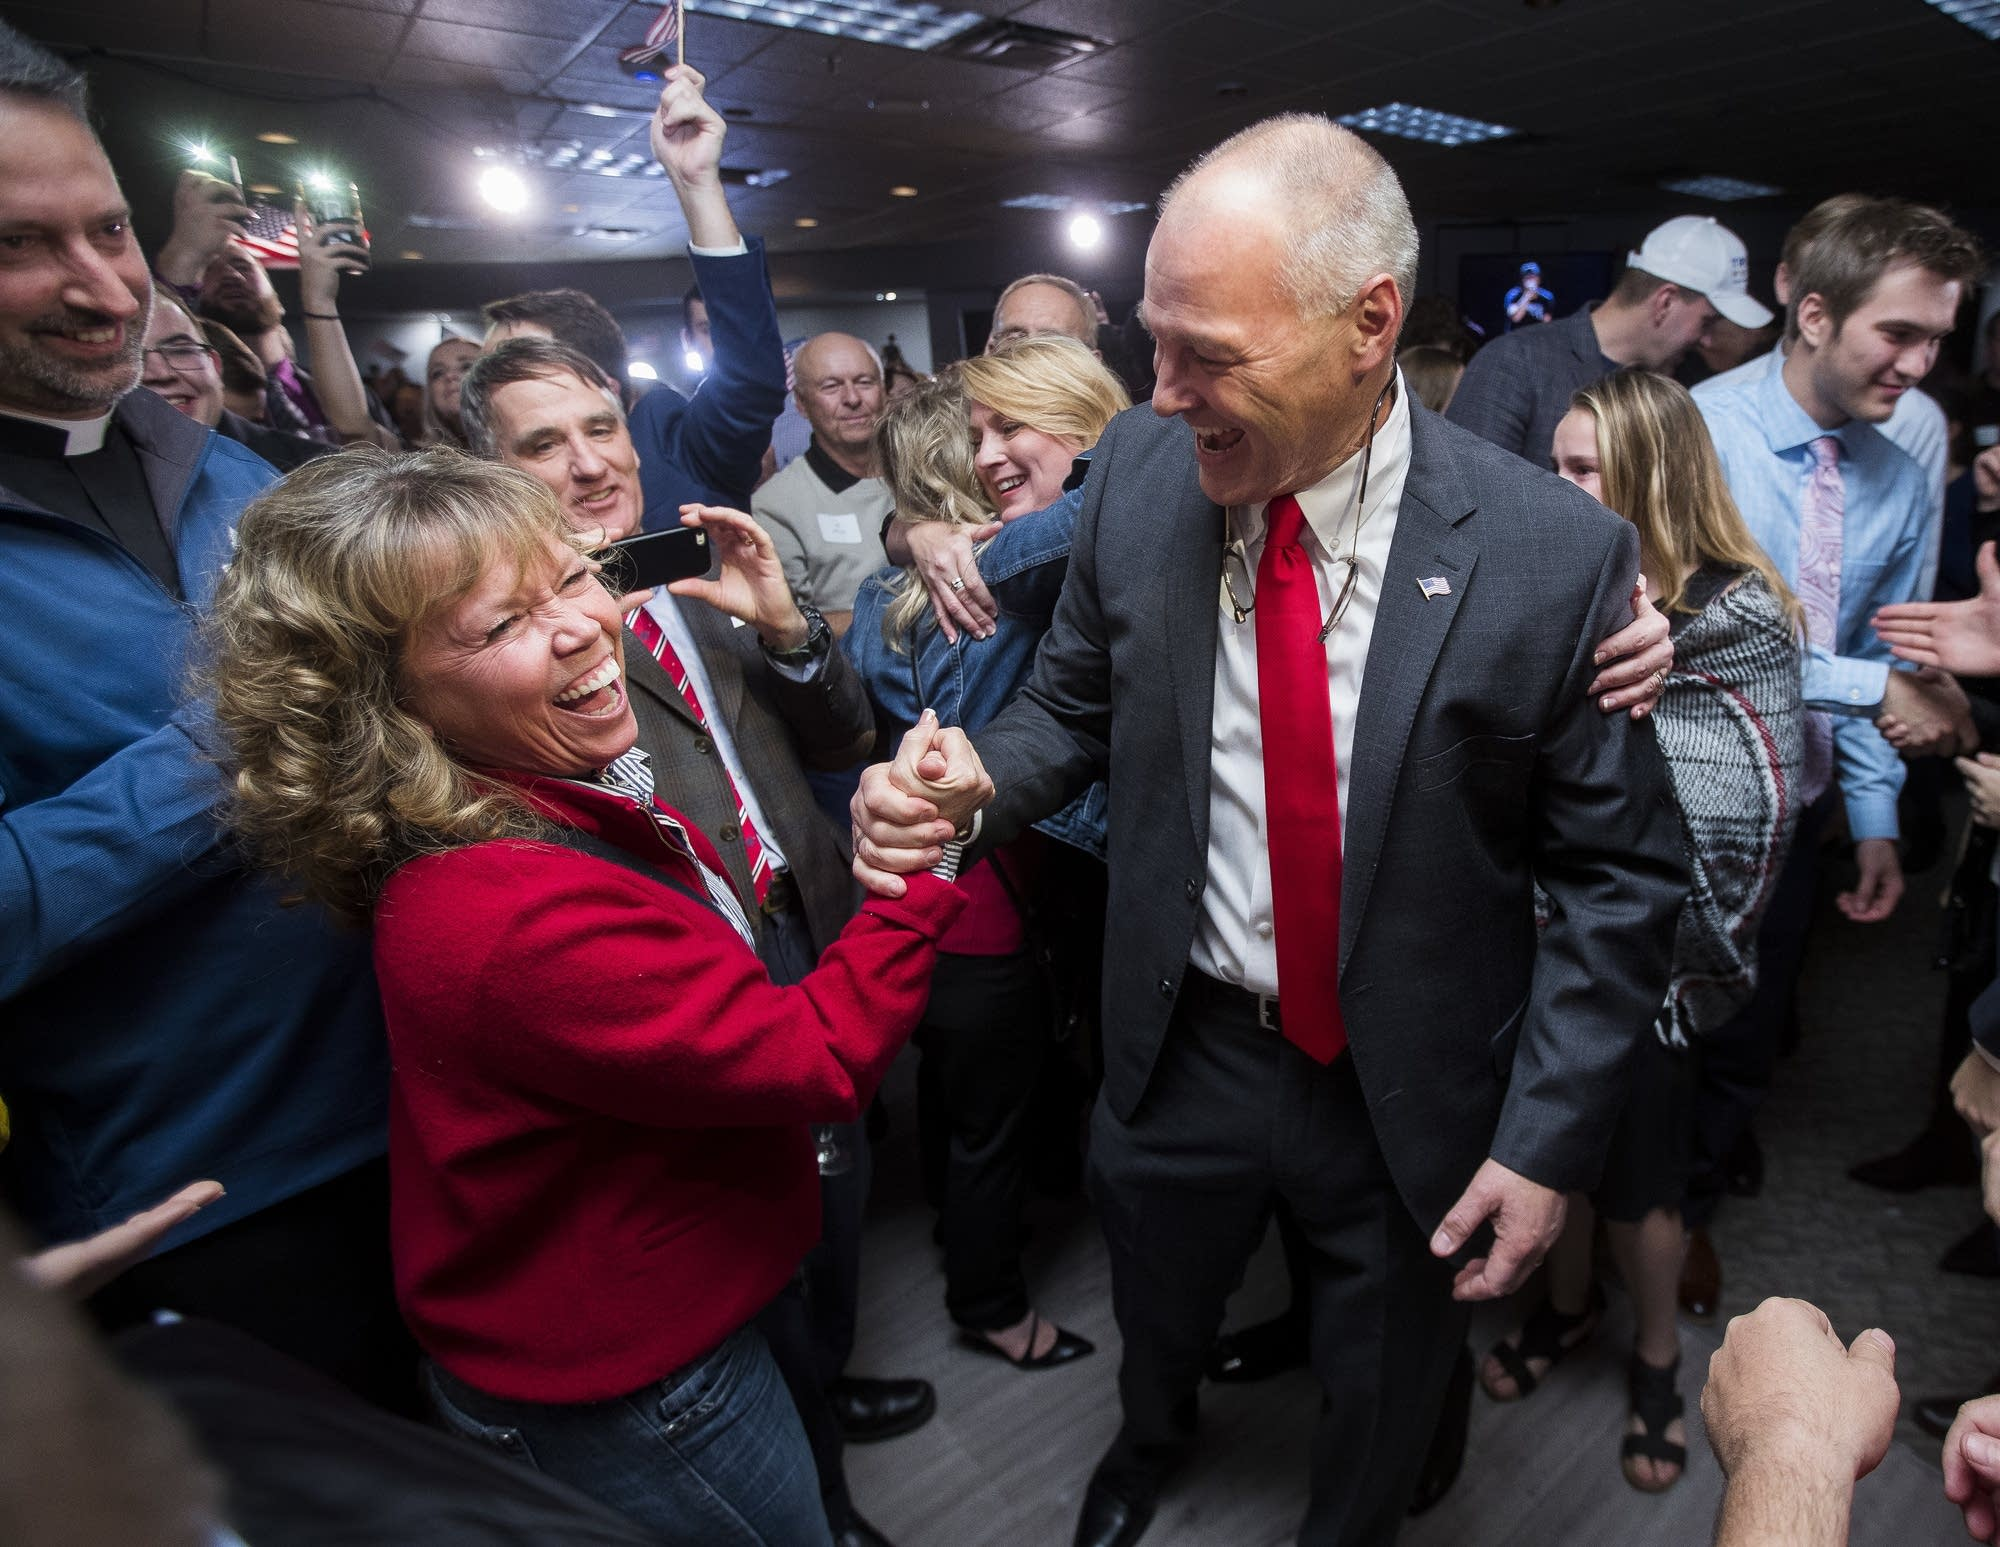 Pete Stauber, 8th District Rep. candidate, celebrates with supporters.